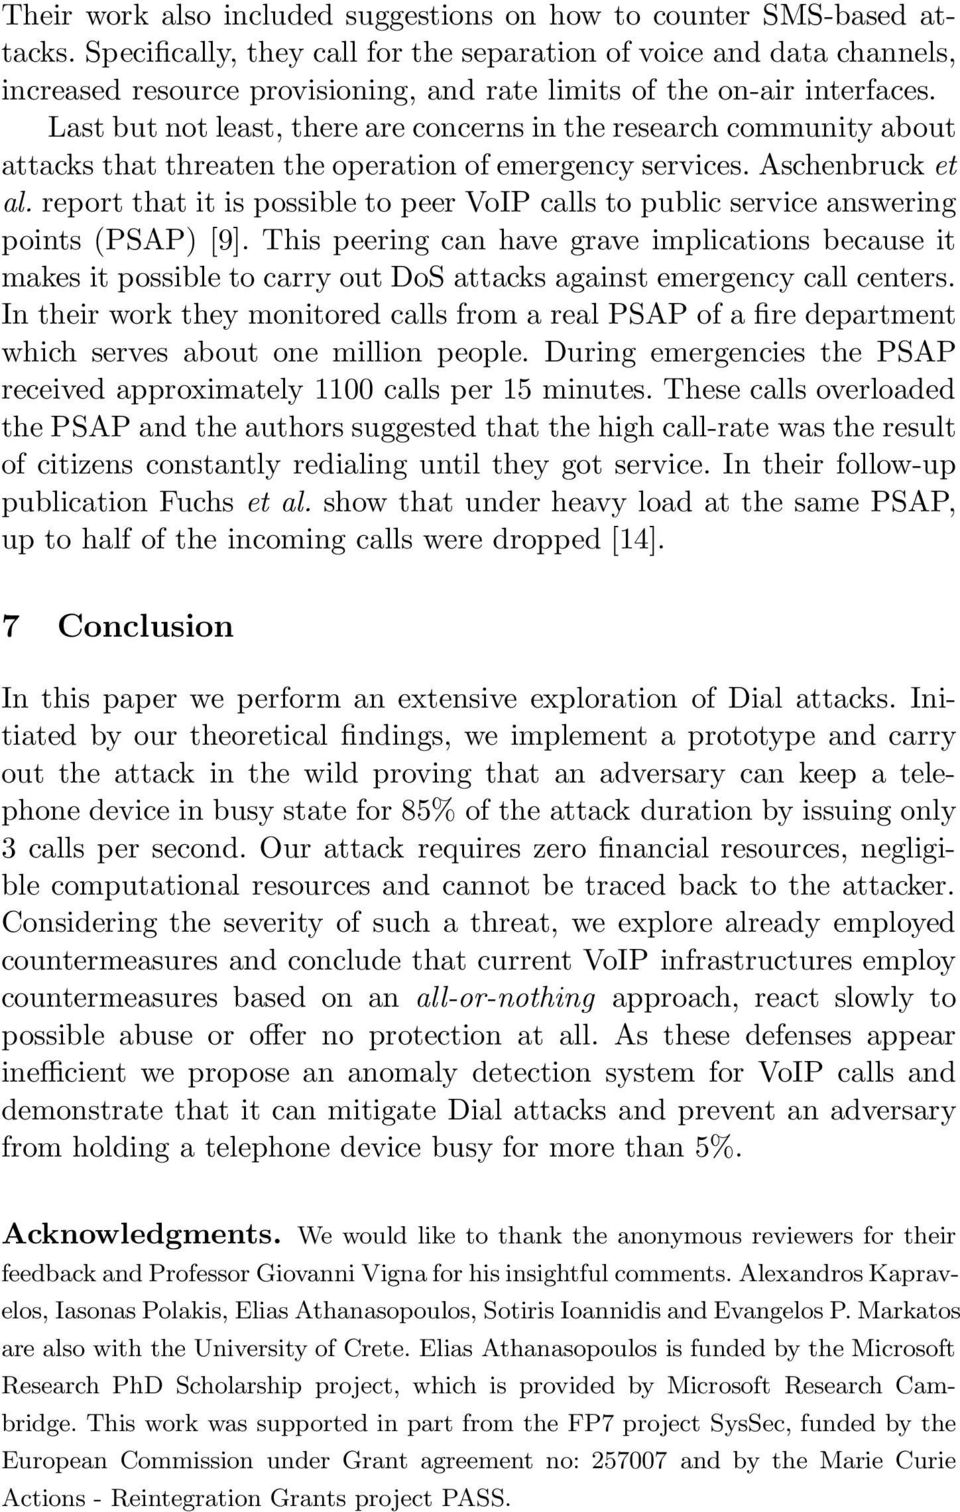 Last but not least, there are concerns in the research community about attacks that threaten the operation of emergency services. Aschenbruck et al.